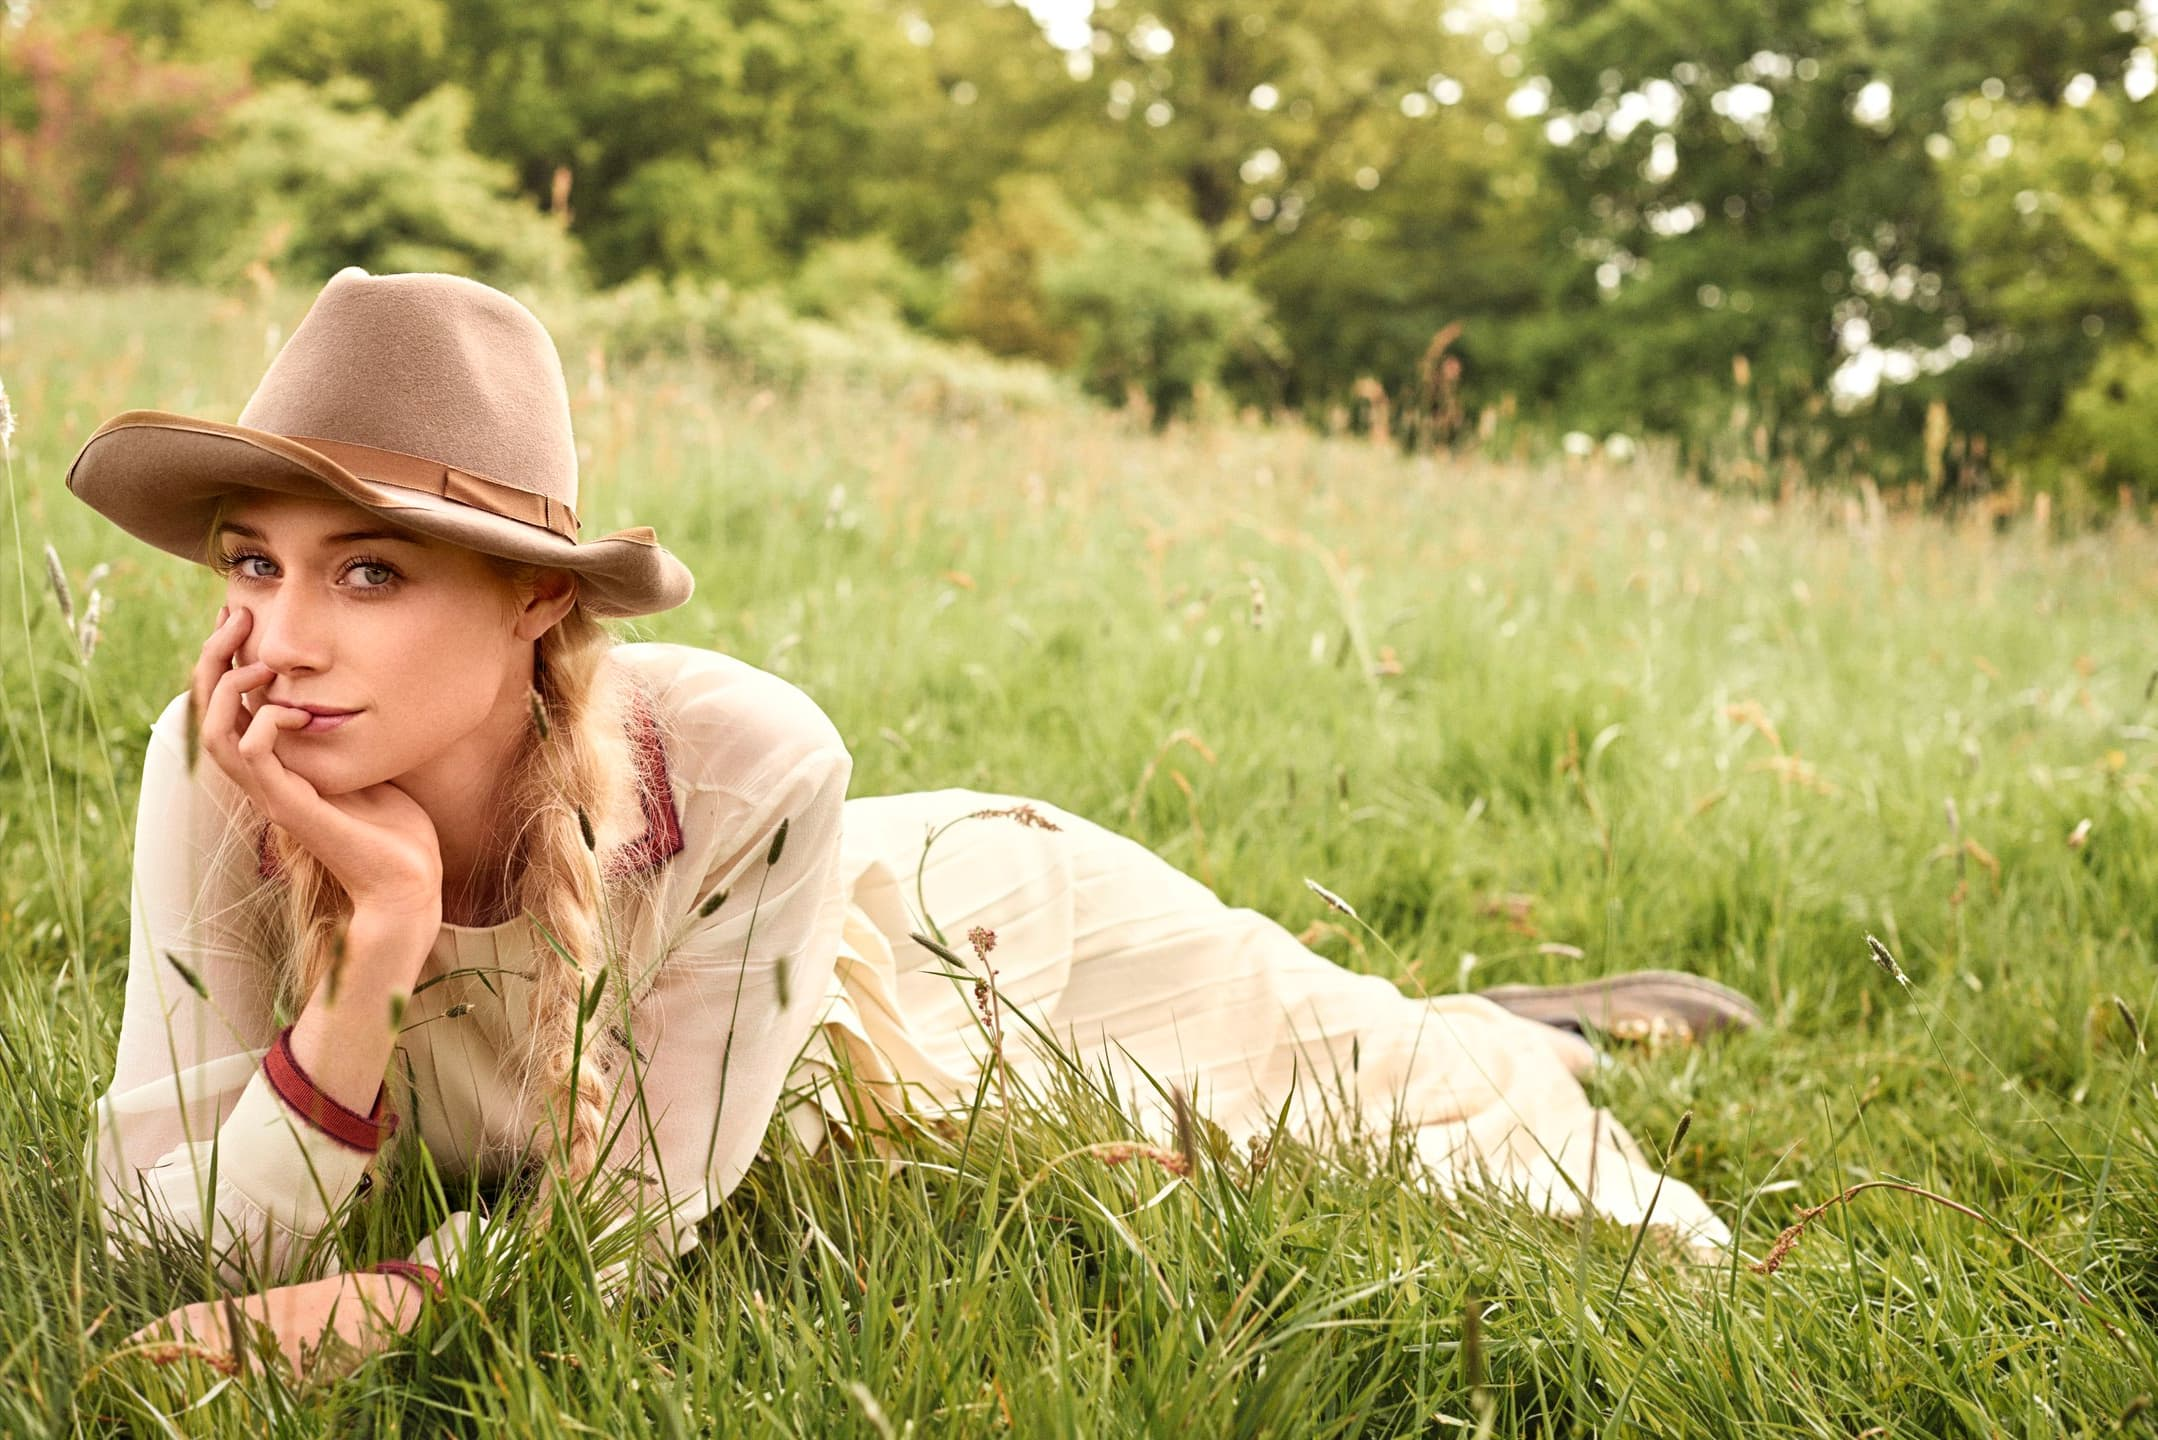 Grace Quality Cars >> Elizabeth Debicki wallpapers, on the grass 20+ images High Quality